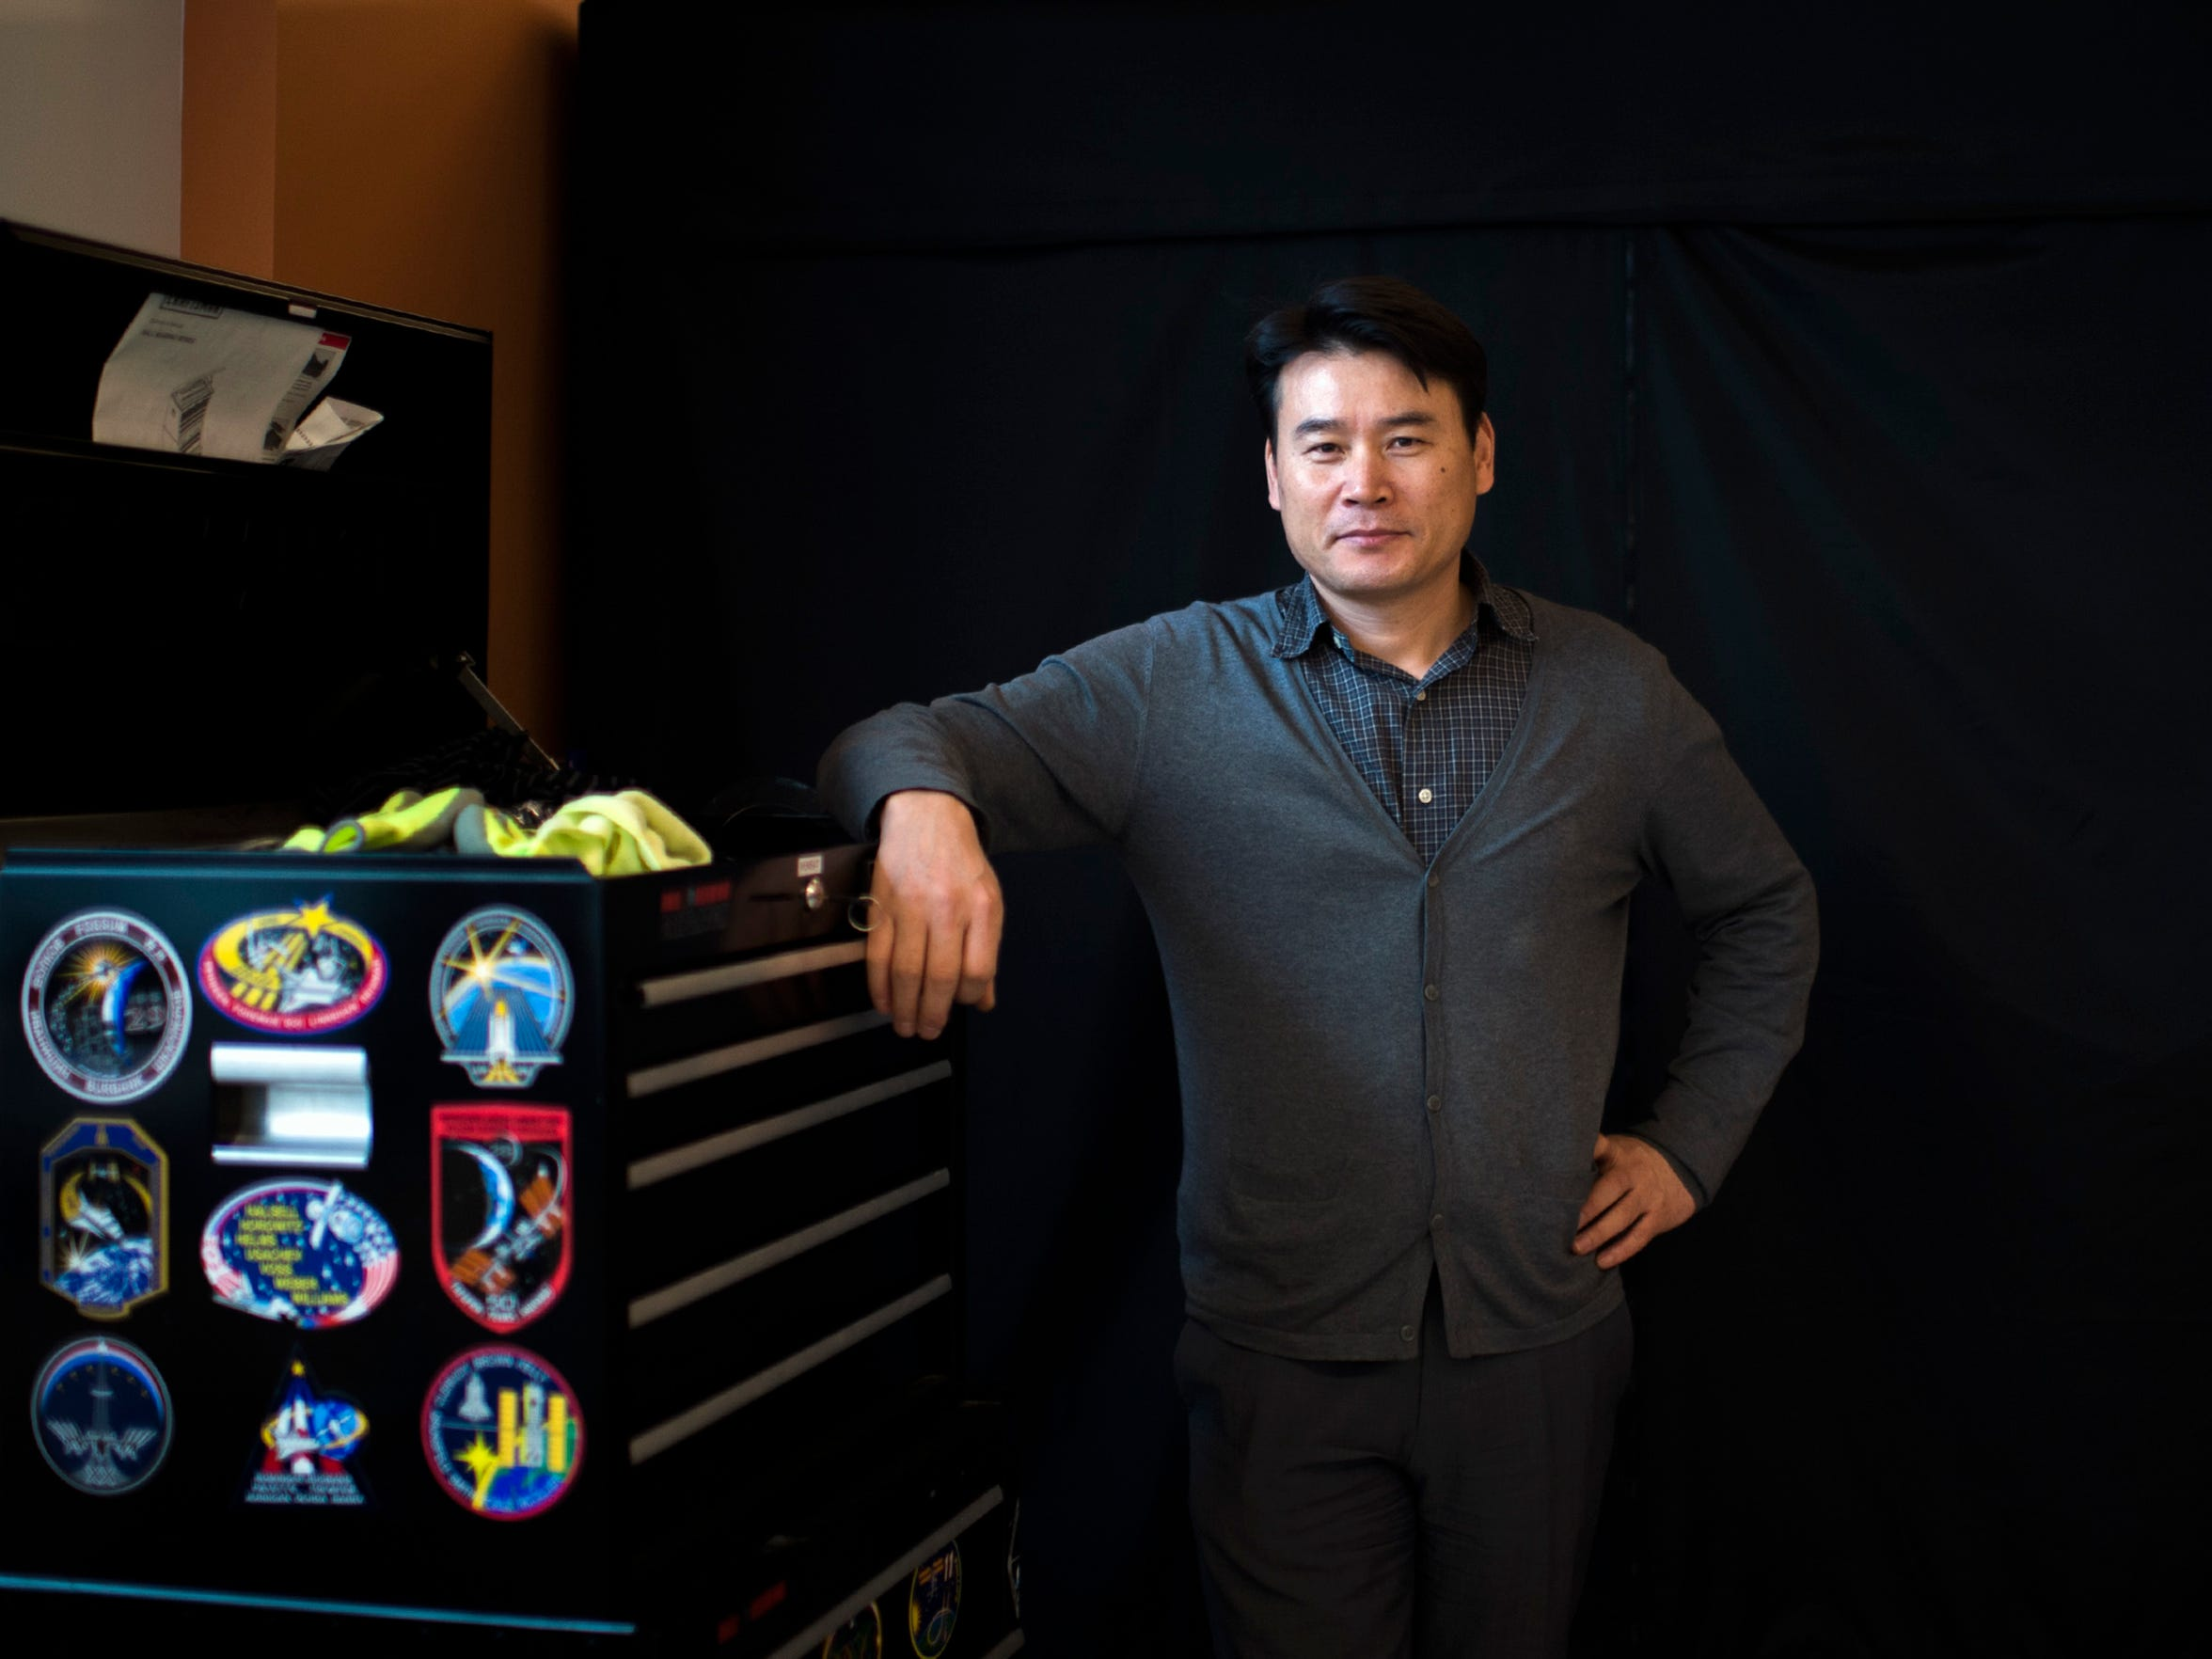 Assistant Professor and the project's principal investigator Sangho Shin poses inside the lab as students work on the construction of the CubeSat.